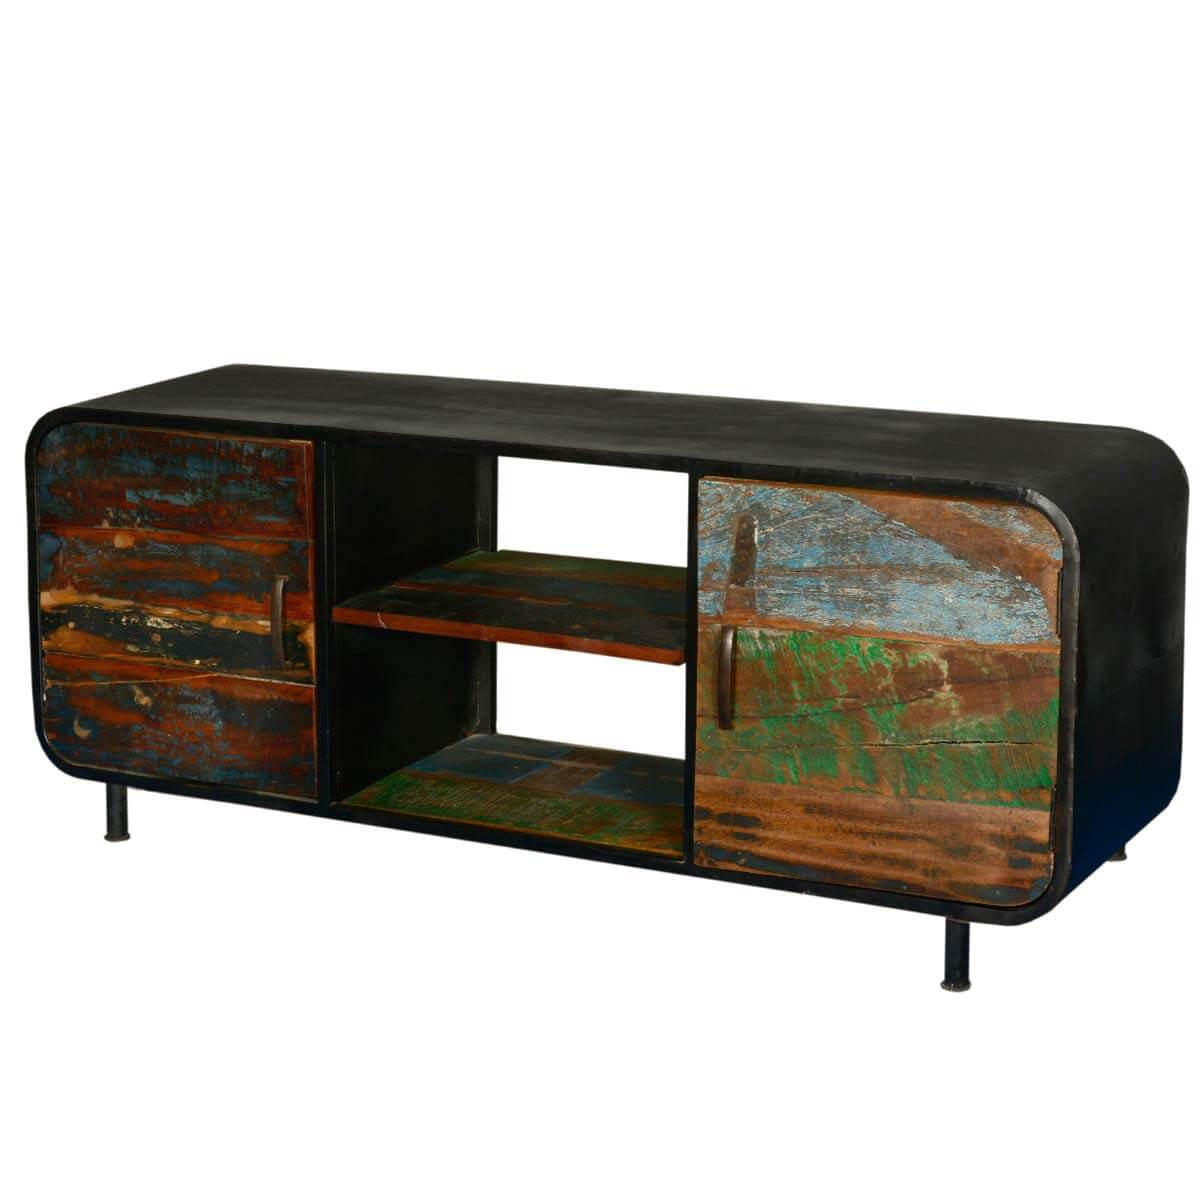 Retro Reclaimed Wood & Iron Media Console Cabinet